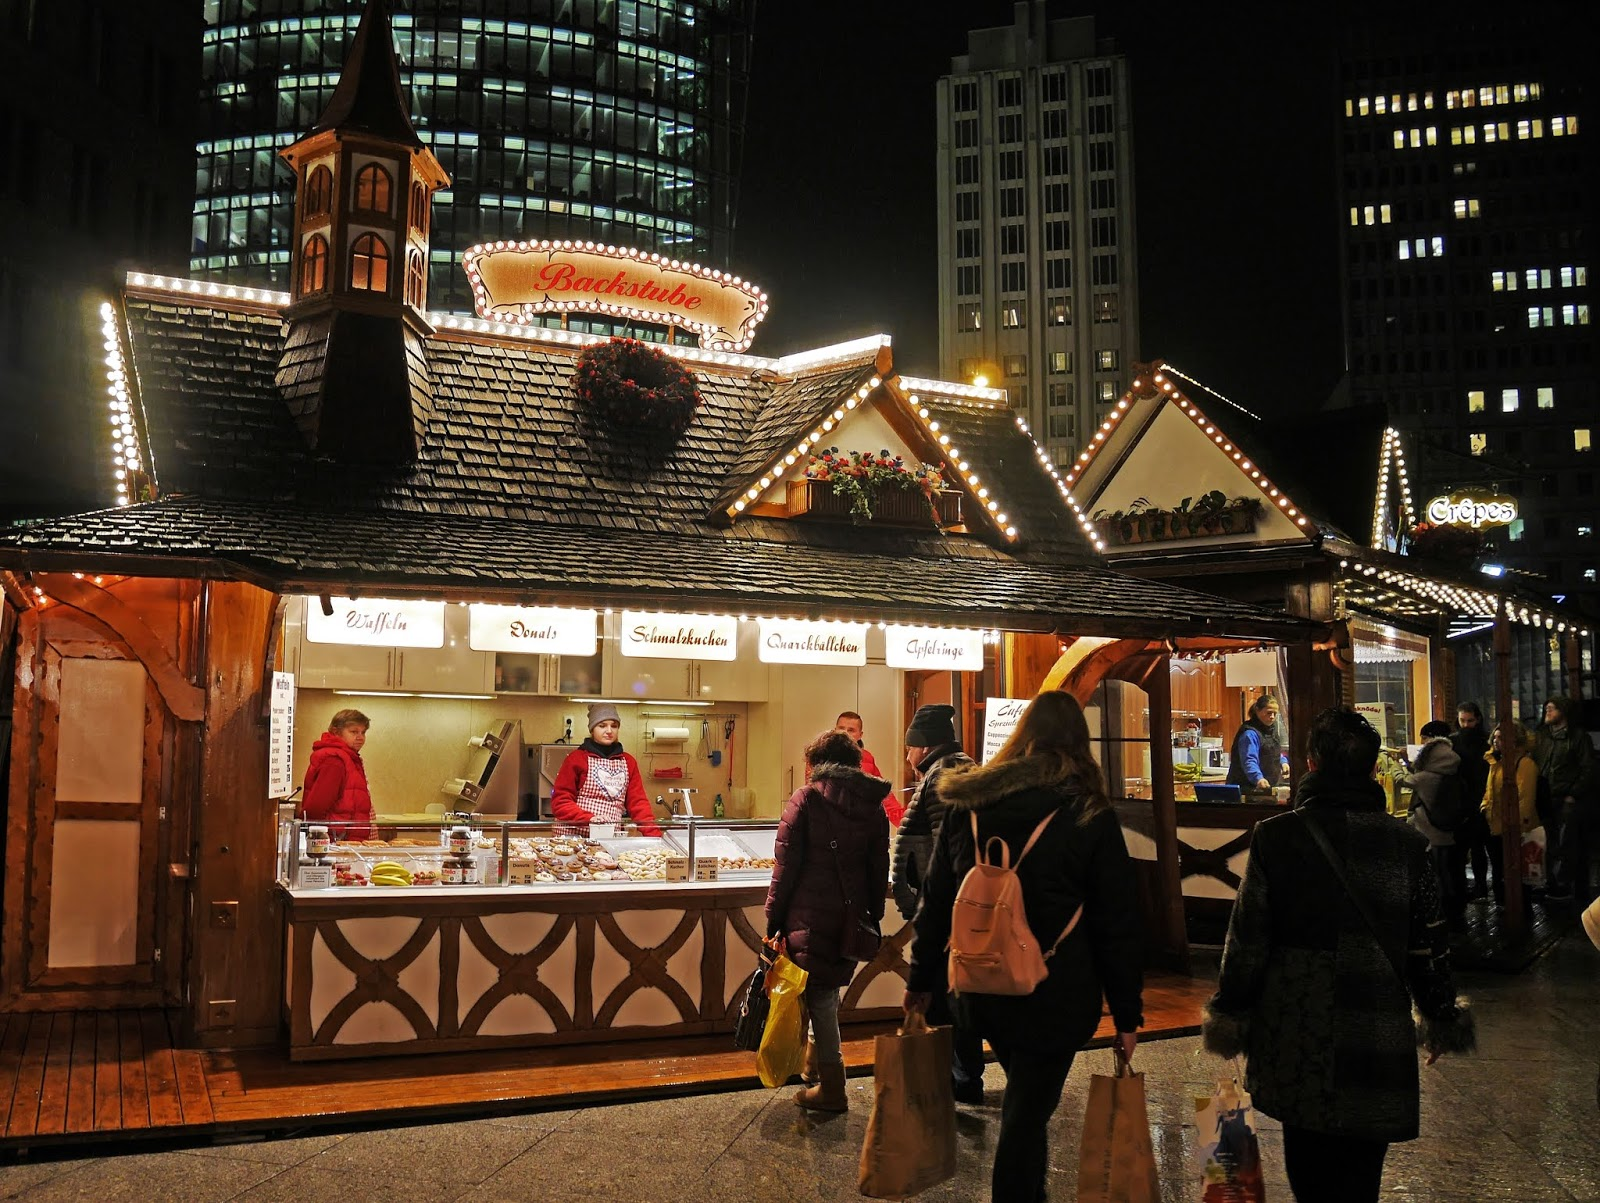 Food stall at the Potsdamer Platz Christmas Market in Berlin